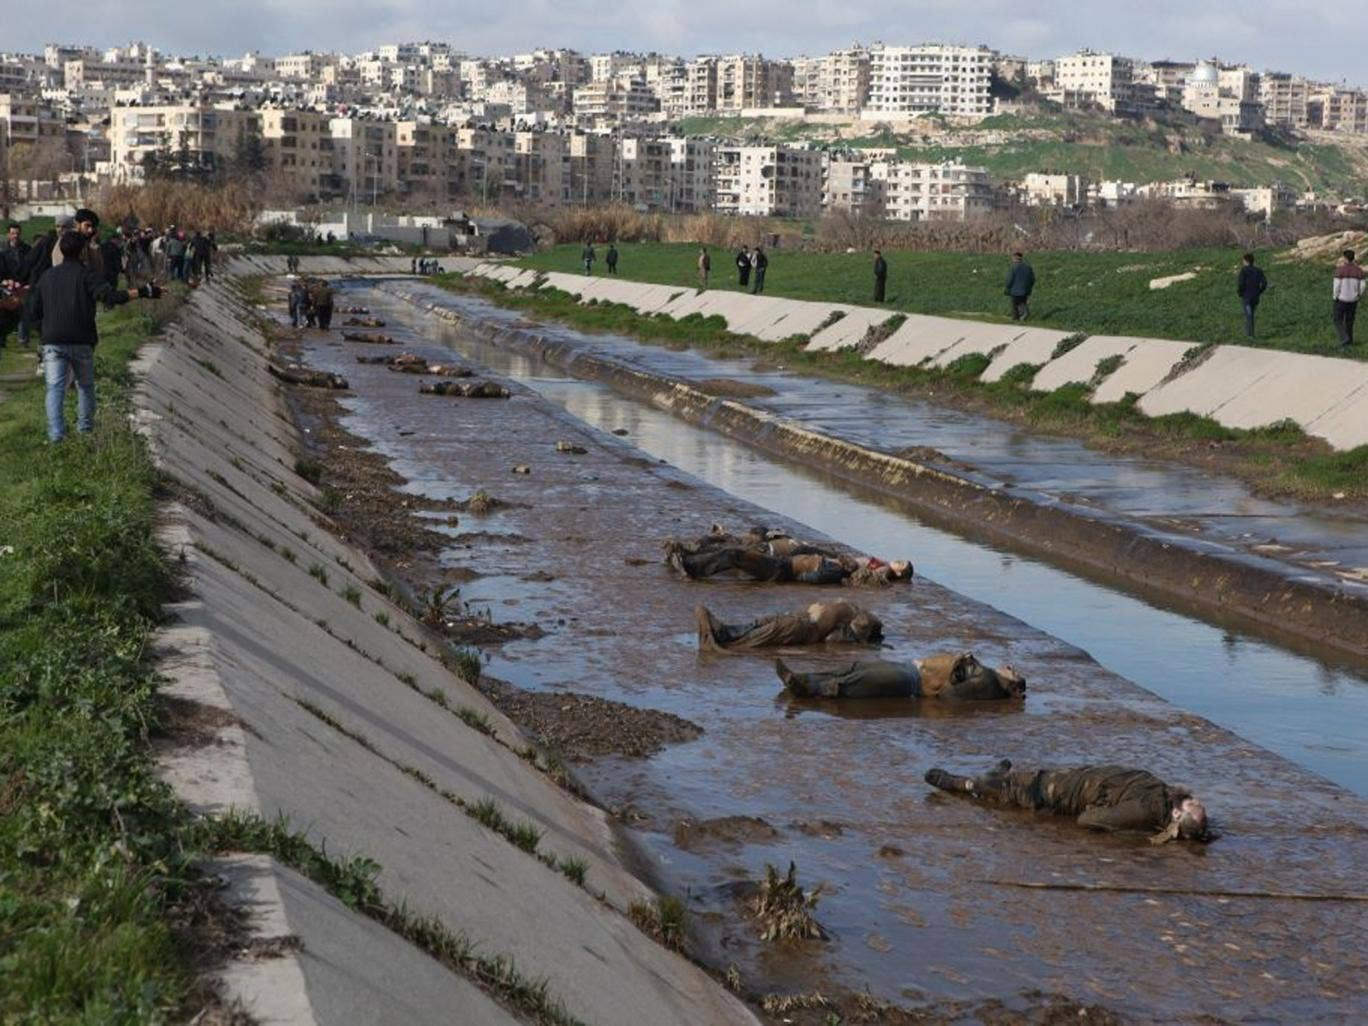 Locals gather at the banks of a small canal coming from a government-controlled suburb of Aleppo to view dozens of bodies of people